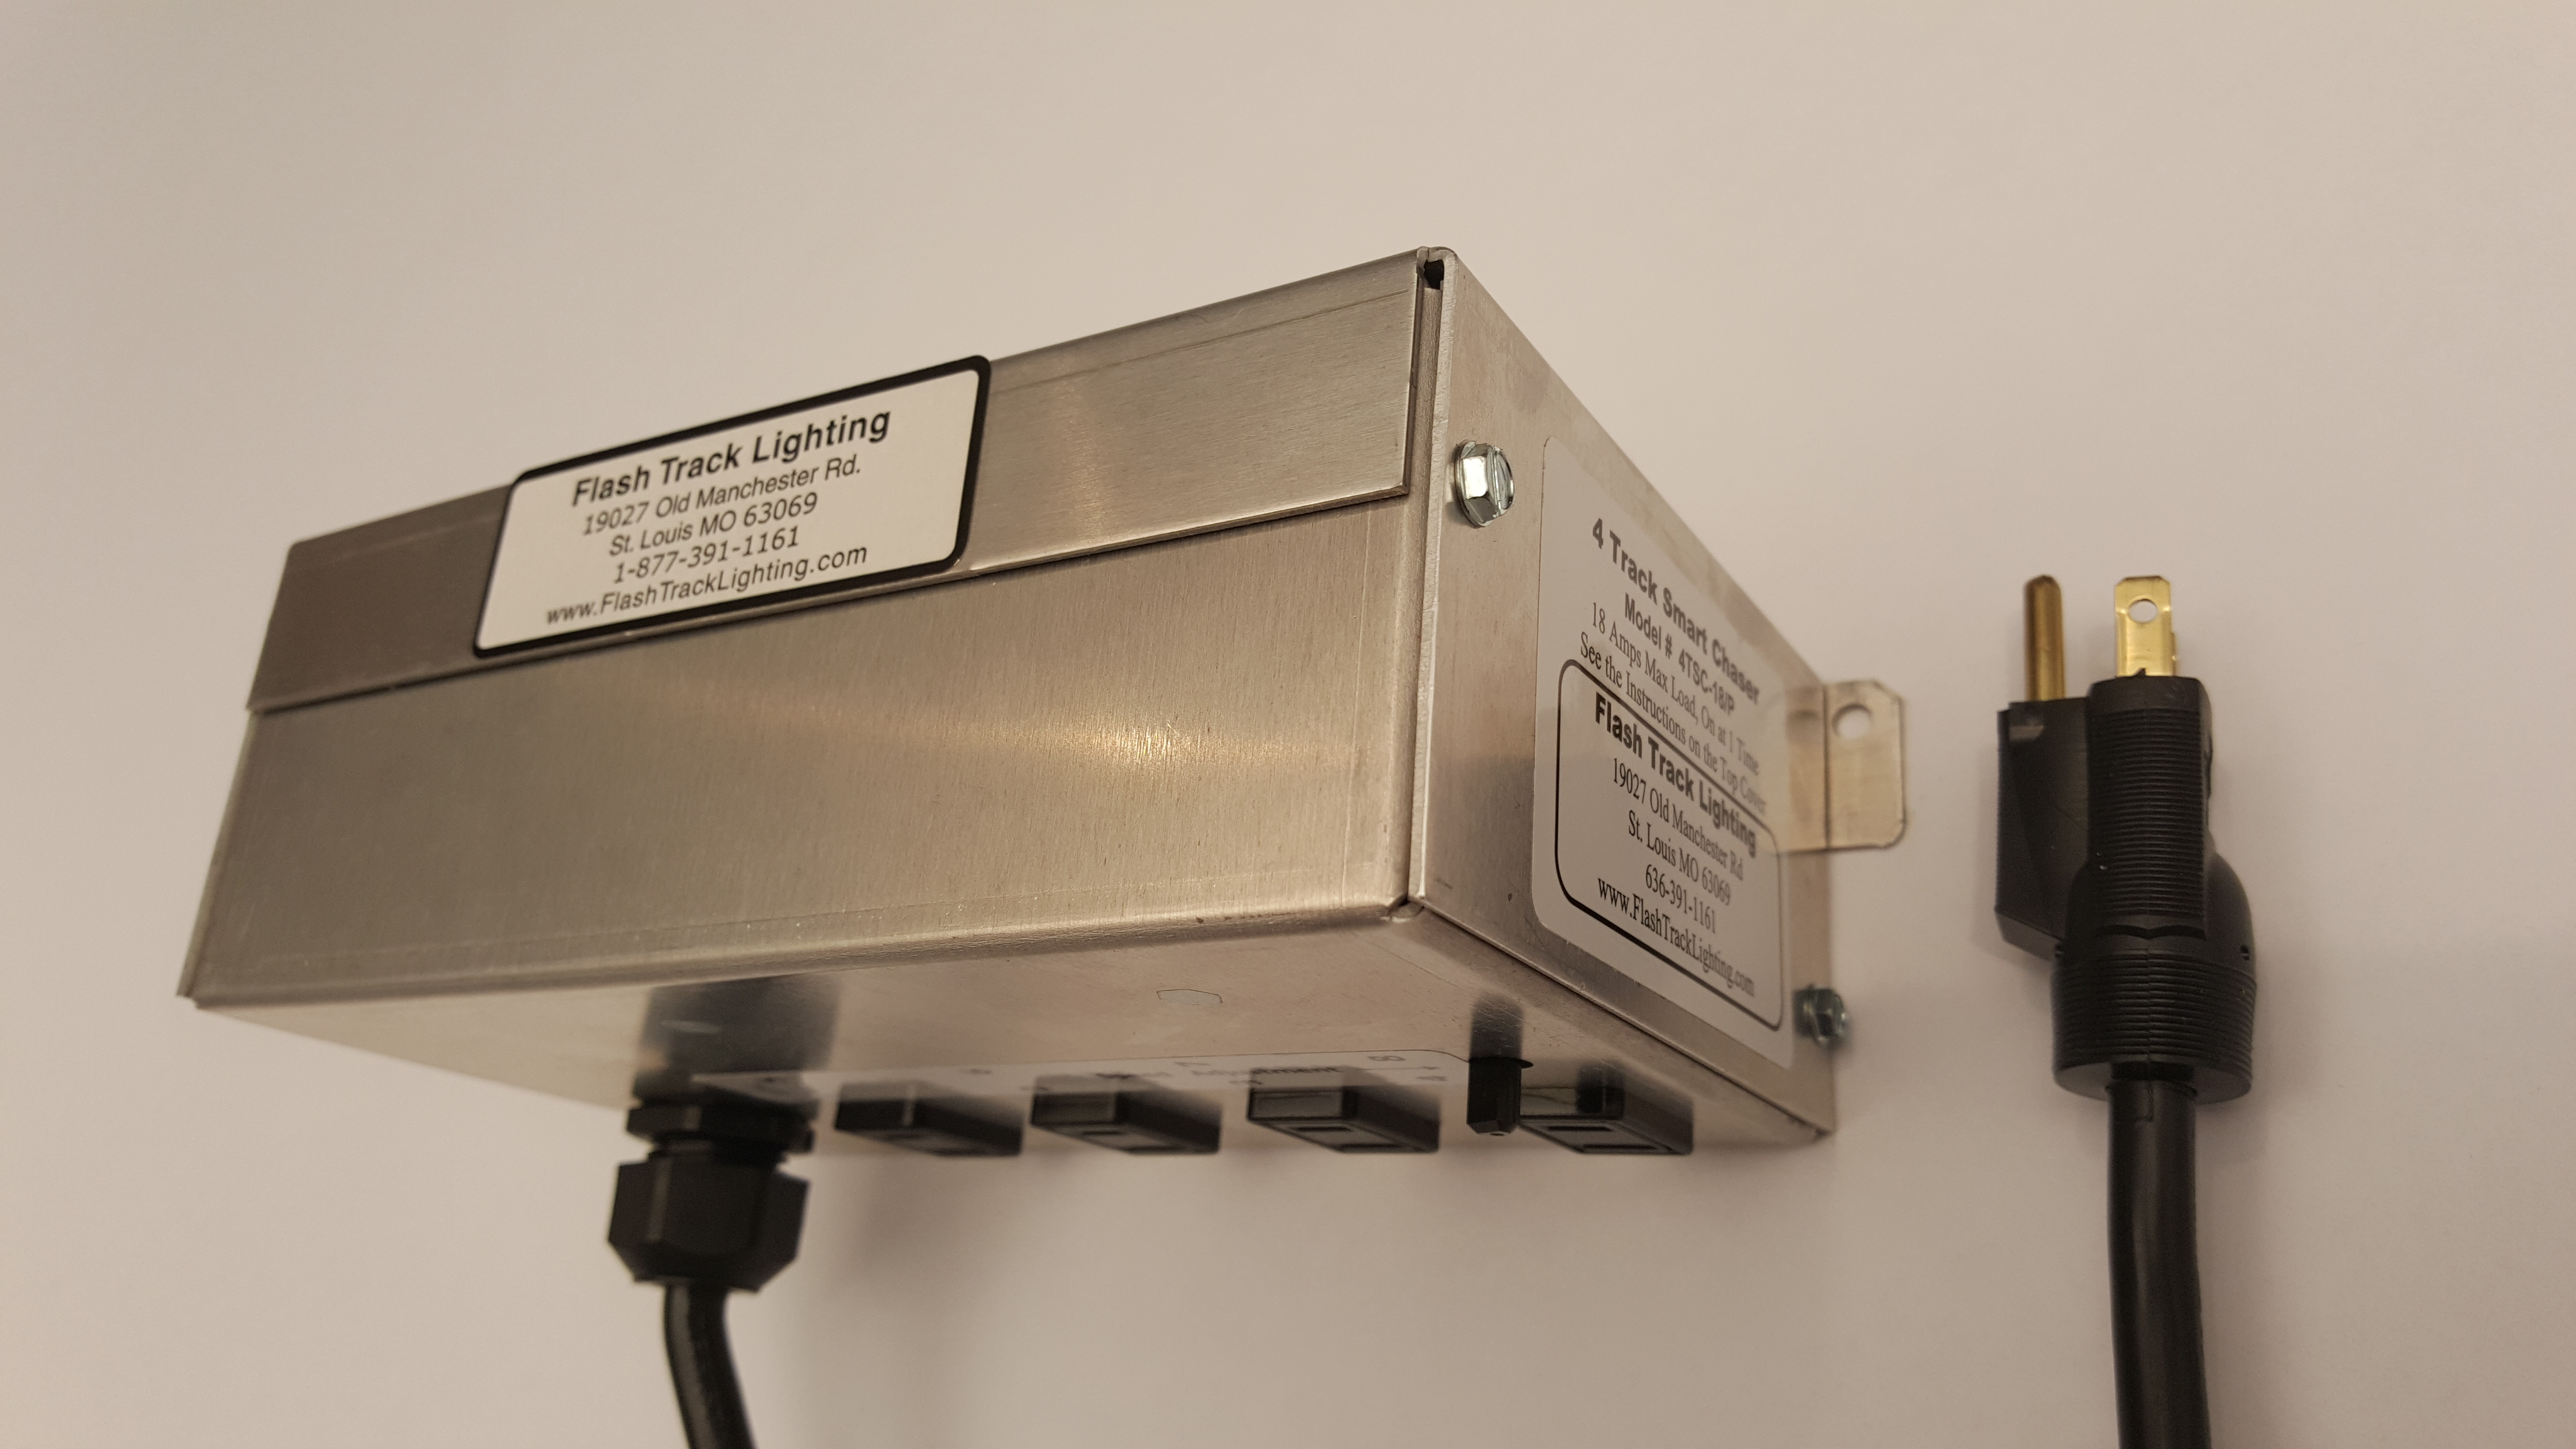 4tsc cover photo chase light controllers by flash track lighting 4tsc cover photo aloadofball Choice Image